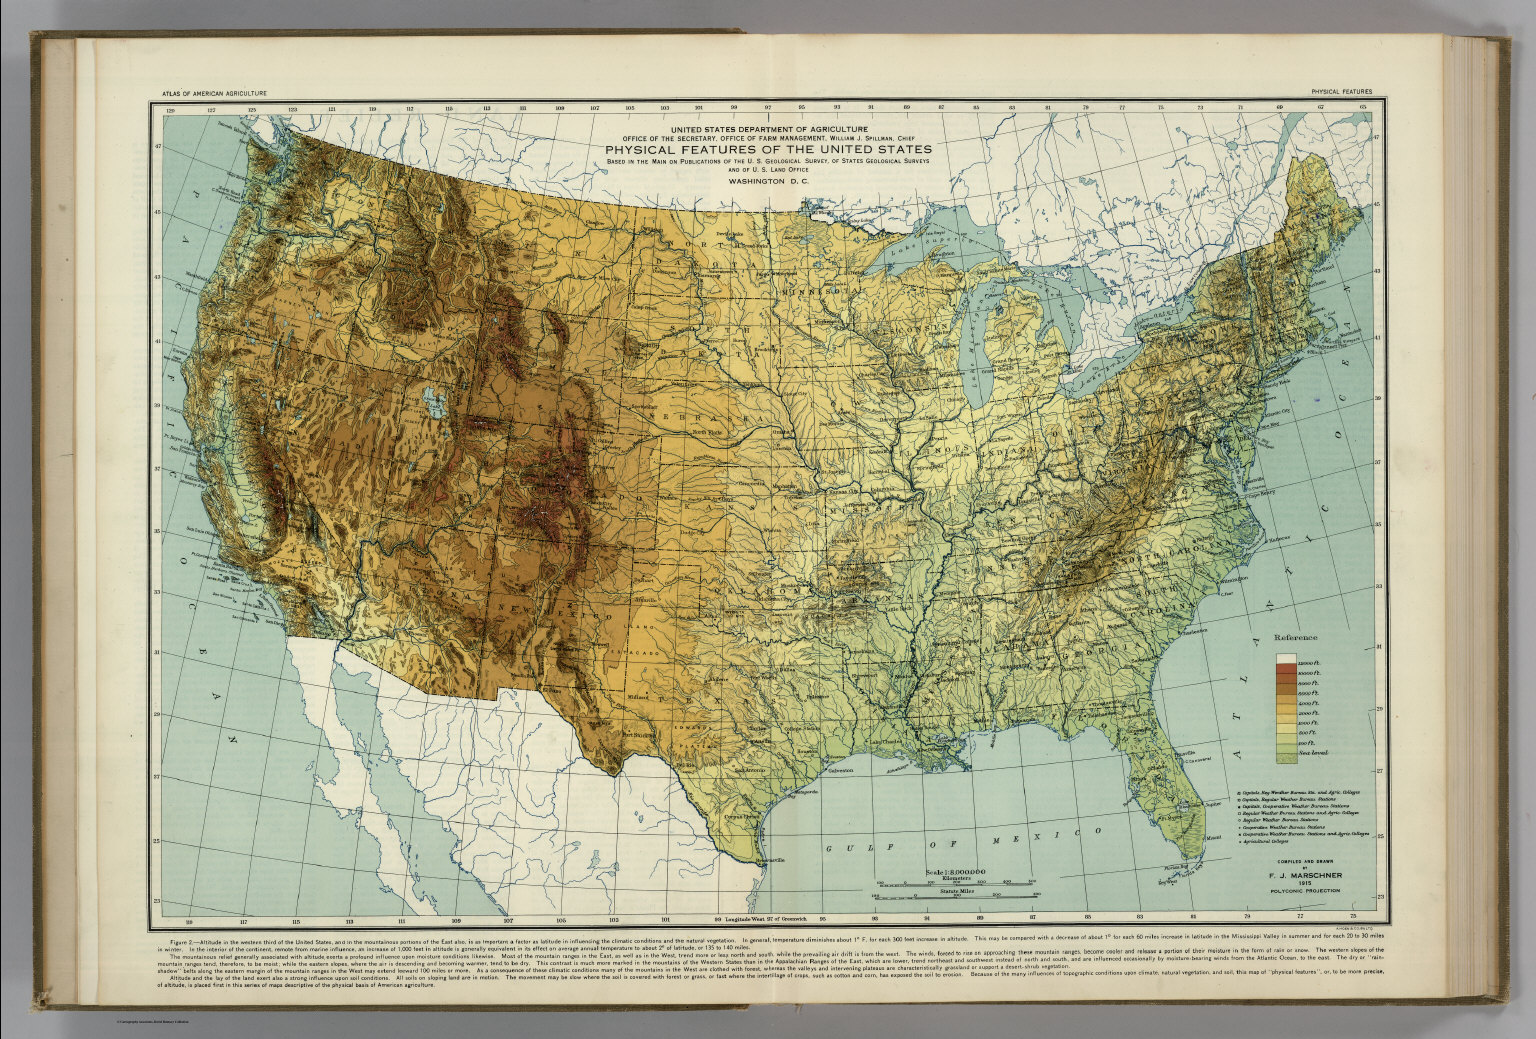 Physical Features Of The United States Atlas Of American - Physical features of the united states map